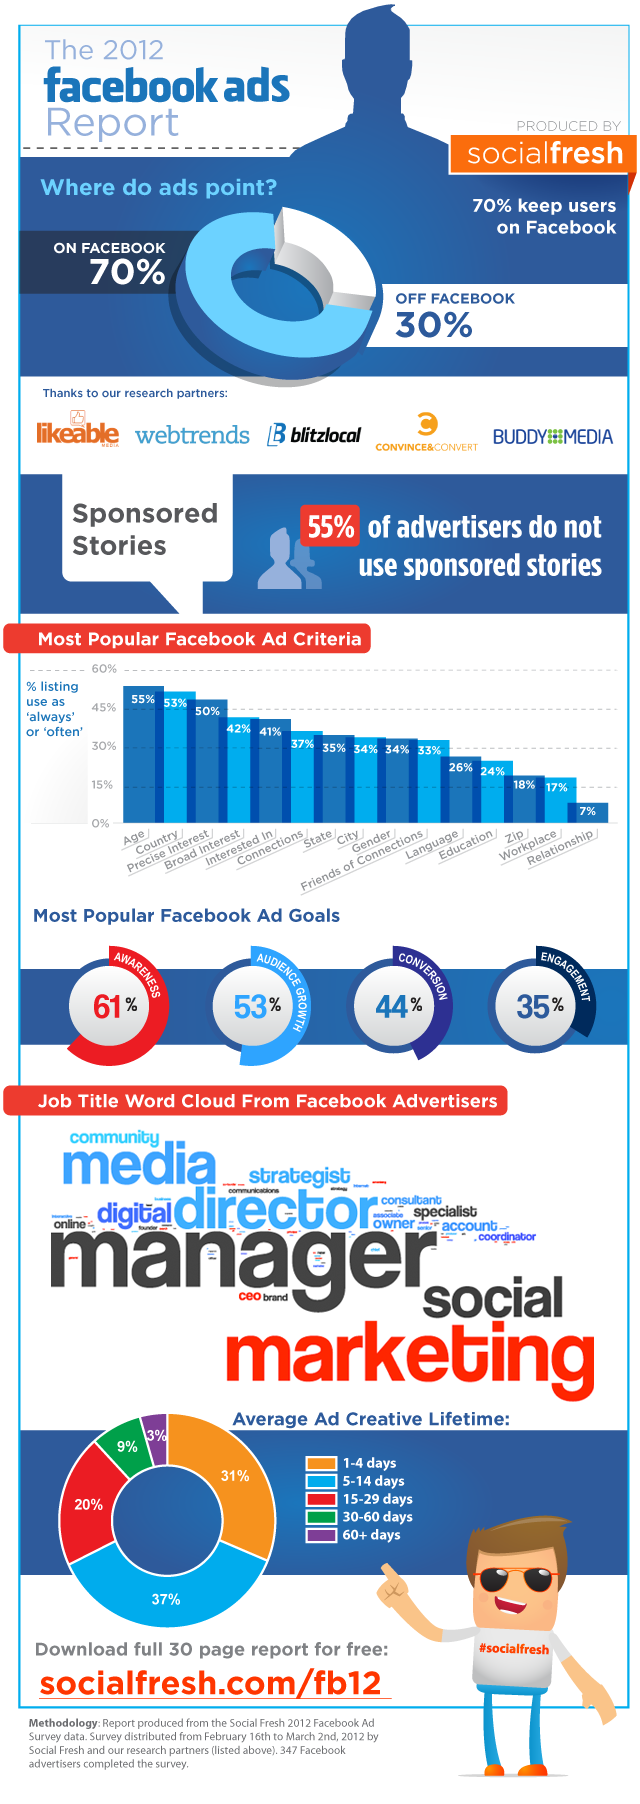 Facebook Ads Report - Criterios de Marketing, Timelife y Goals - ¡I Love You, Infographic!